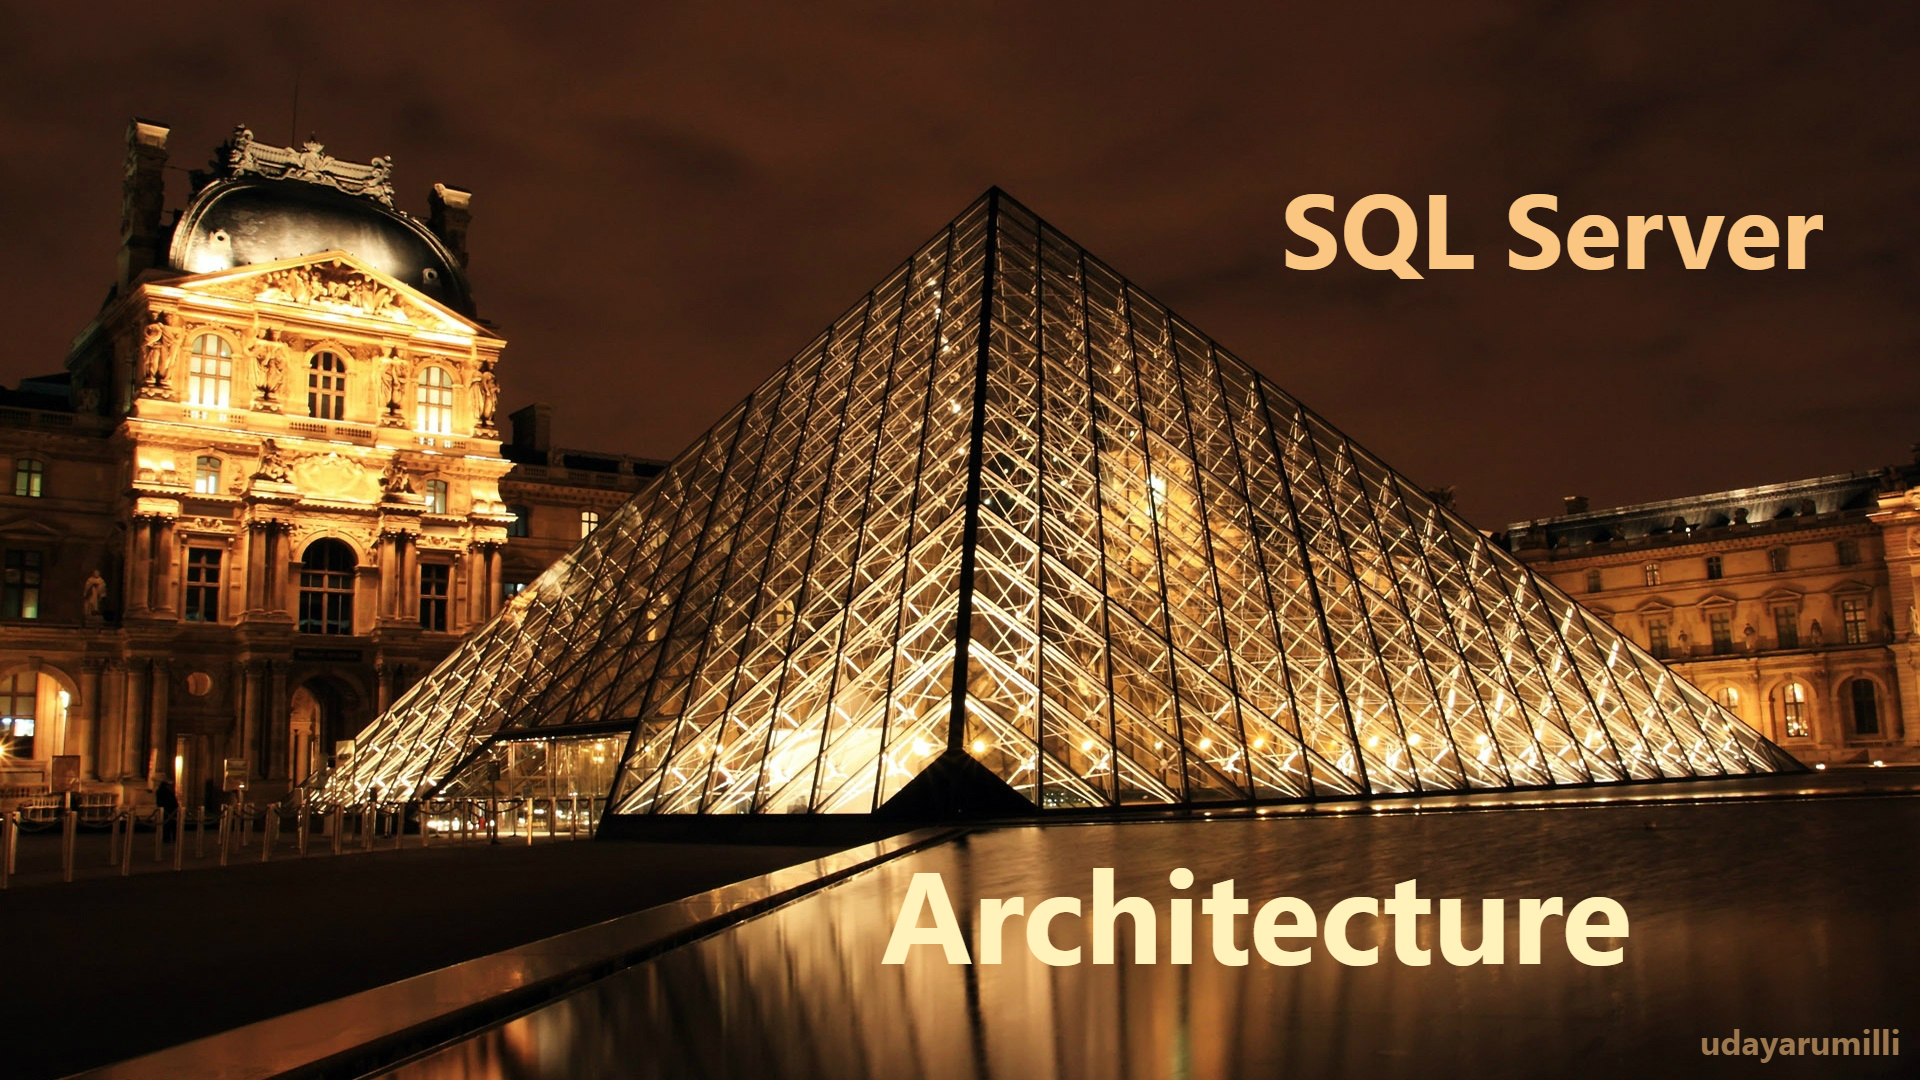 teamwork interview questions sql dba u2013 interview questions sql server architecture questions and answers server interview questions